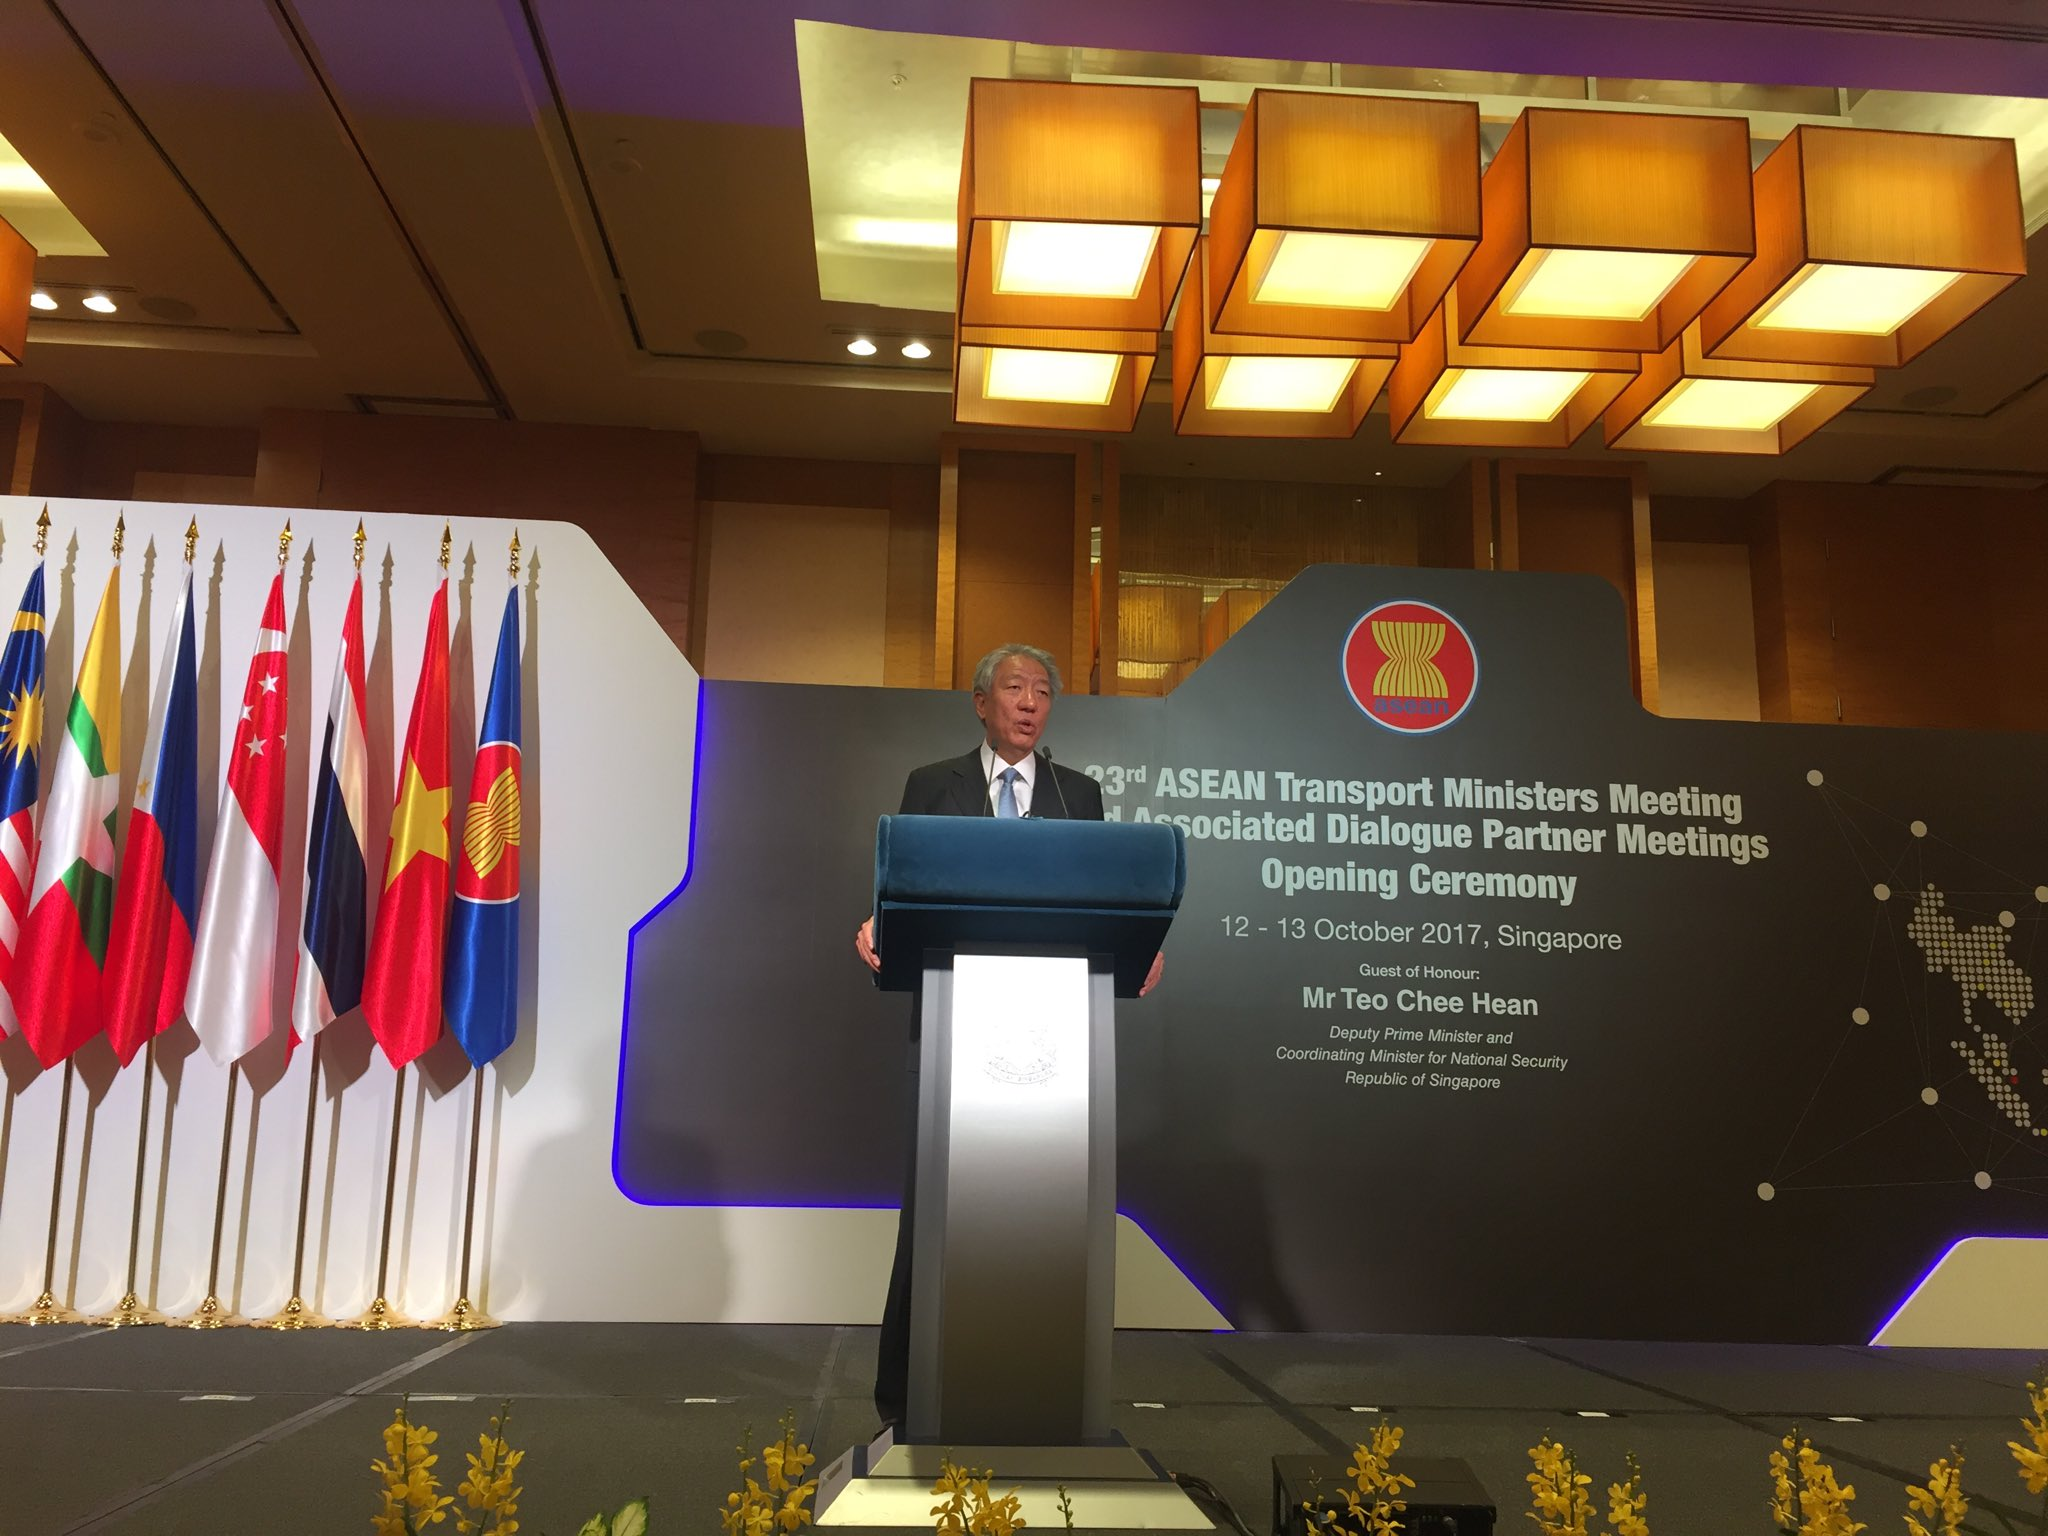 Singapore DPM Teo Chee Hean hosting the ASEAN Transport Ministers Meeting.